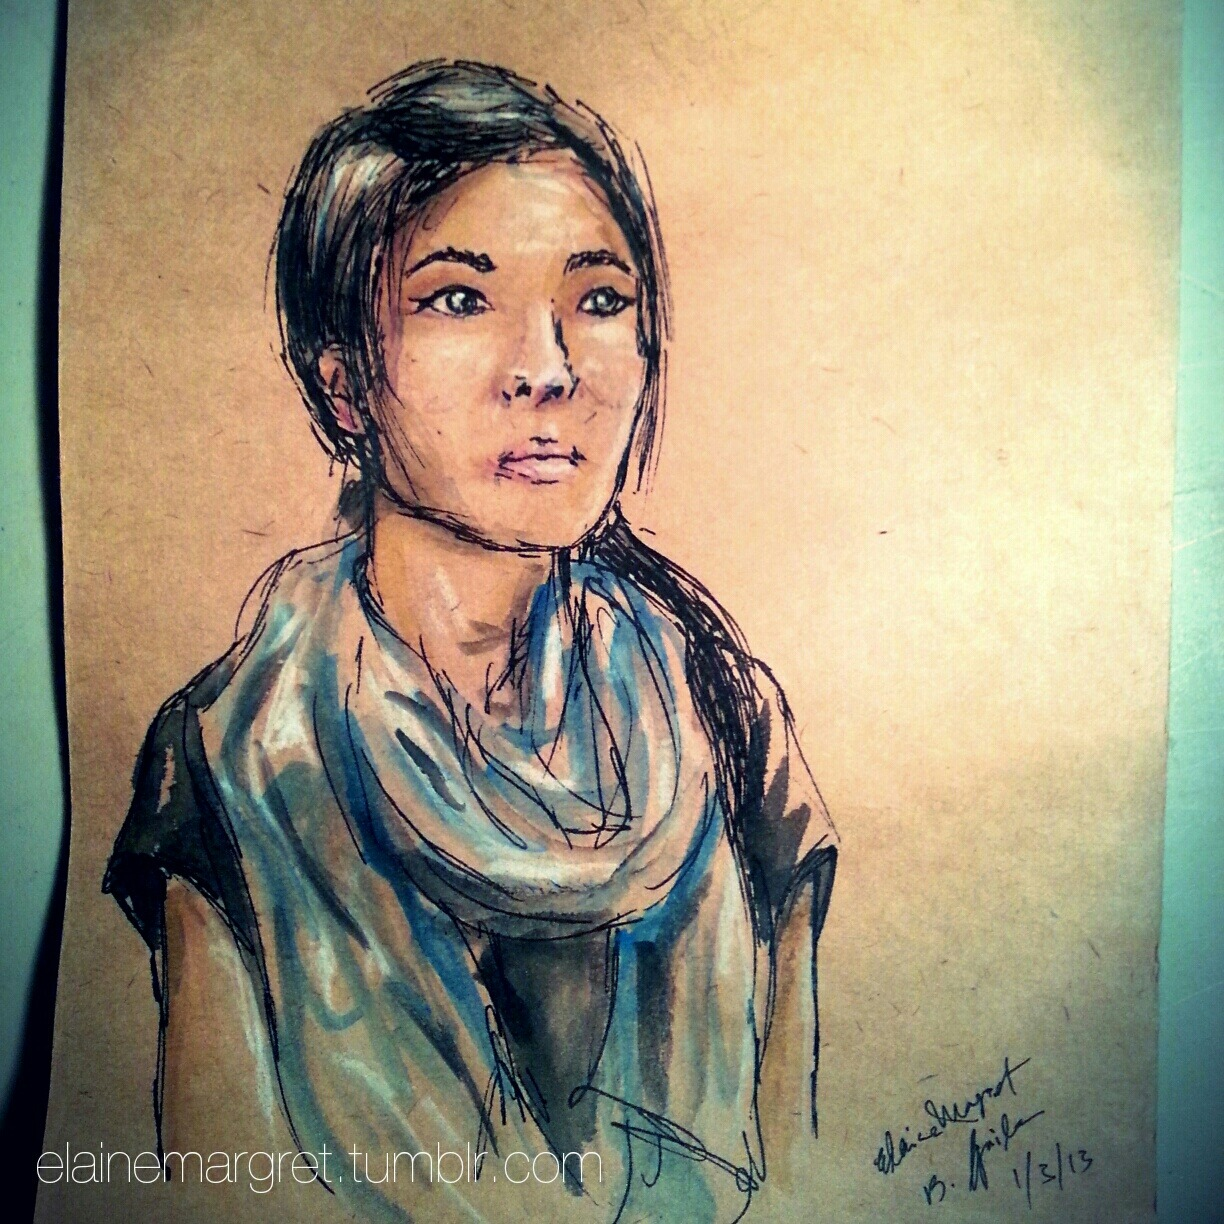 One of my 20-minute portraits this evening. Sold! Derwent Inktense pencils & 0.5 Copic multiliner http://instagr.am/p/WUeLmHv7UF/